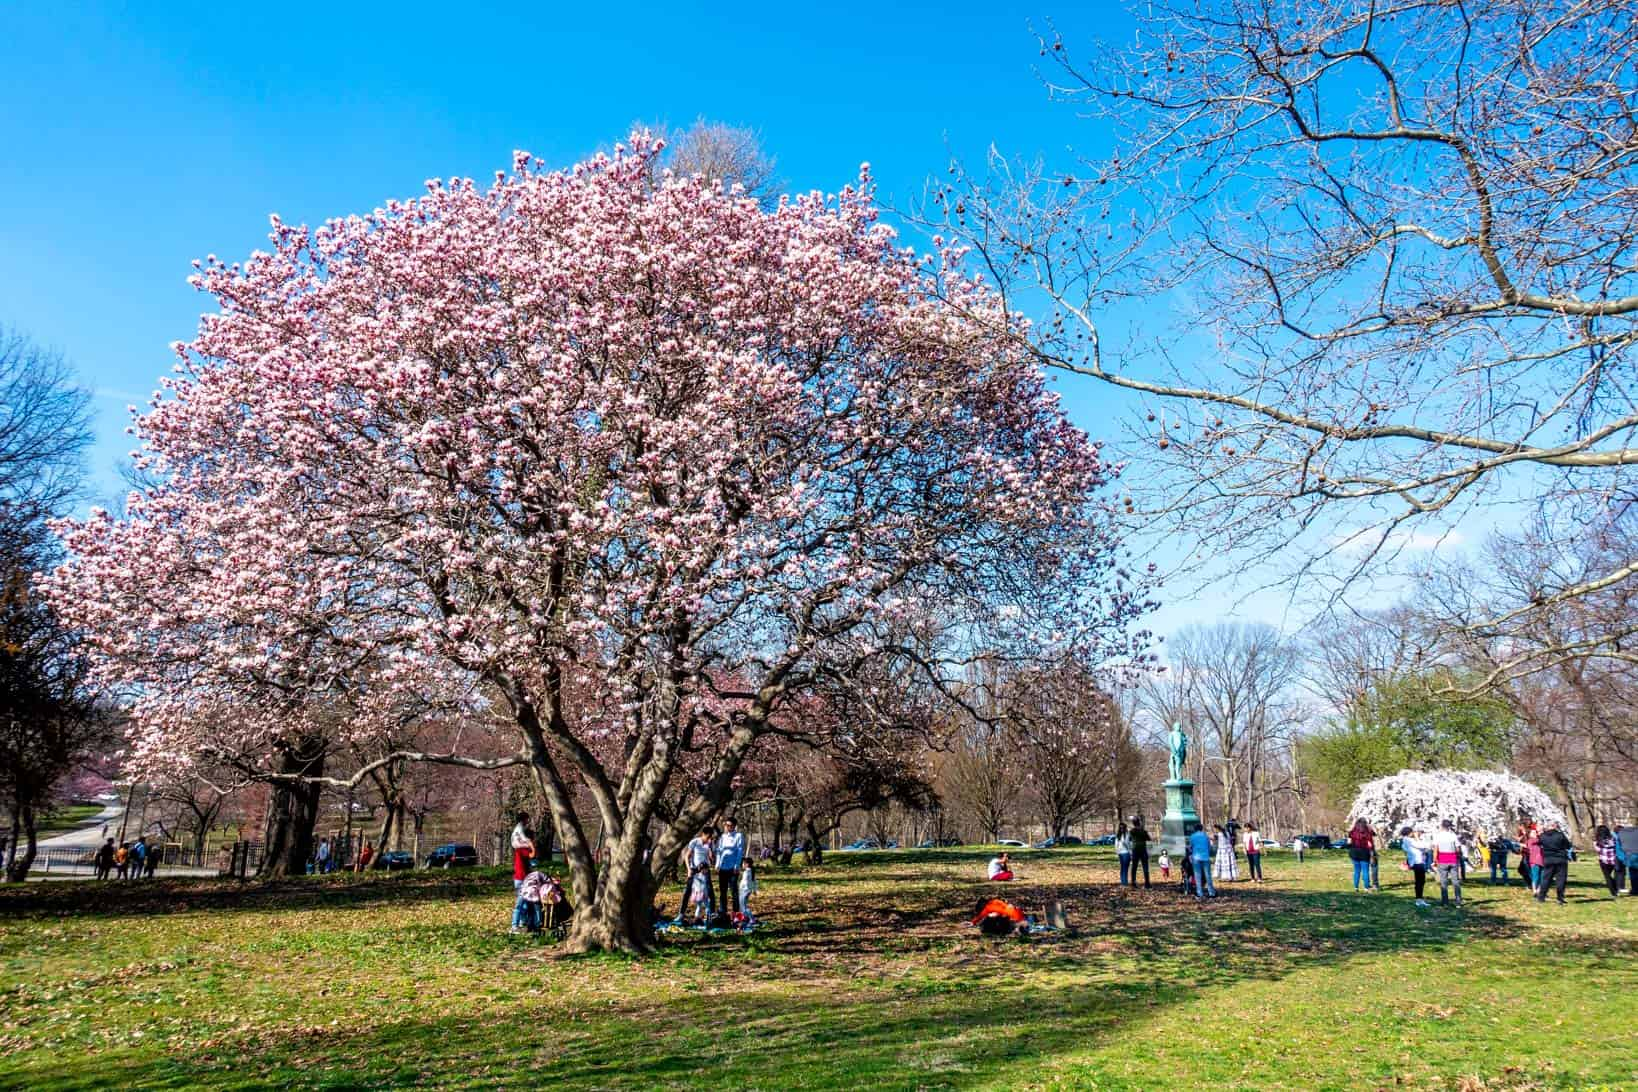 People standing under pink and white cherry blossom trees